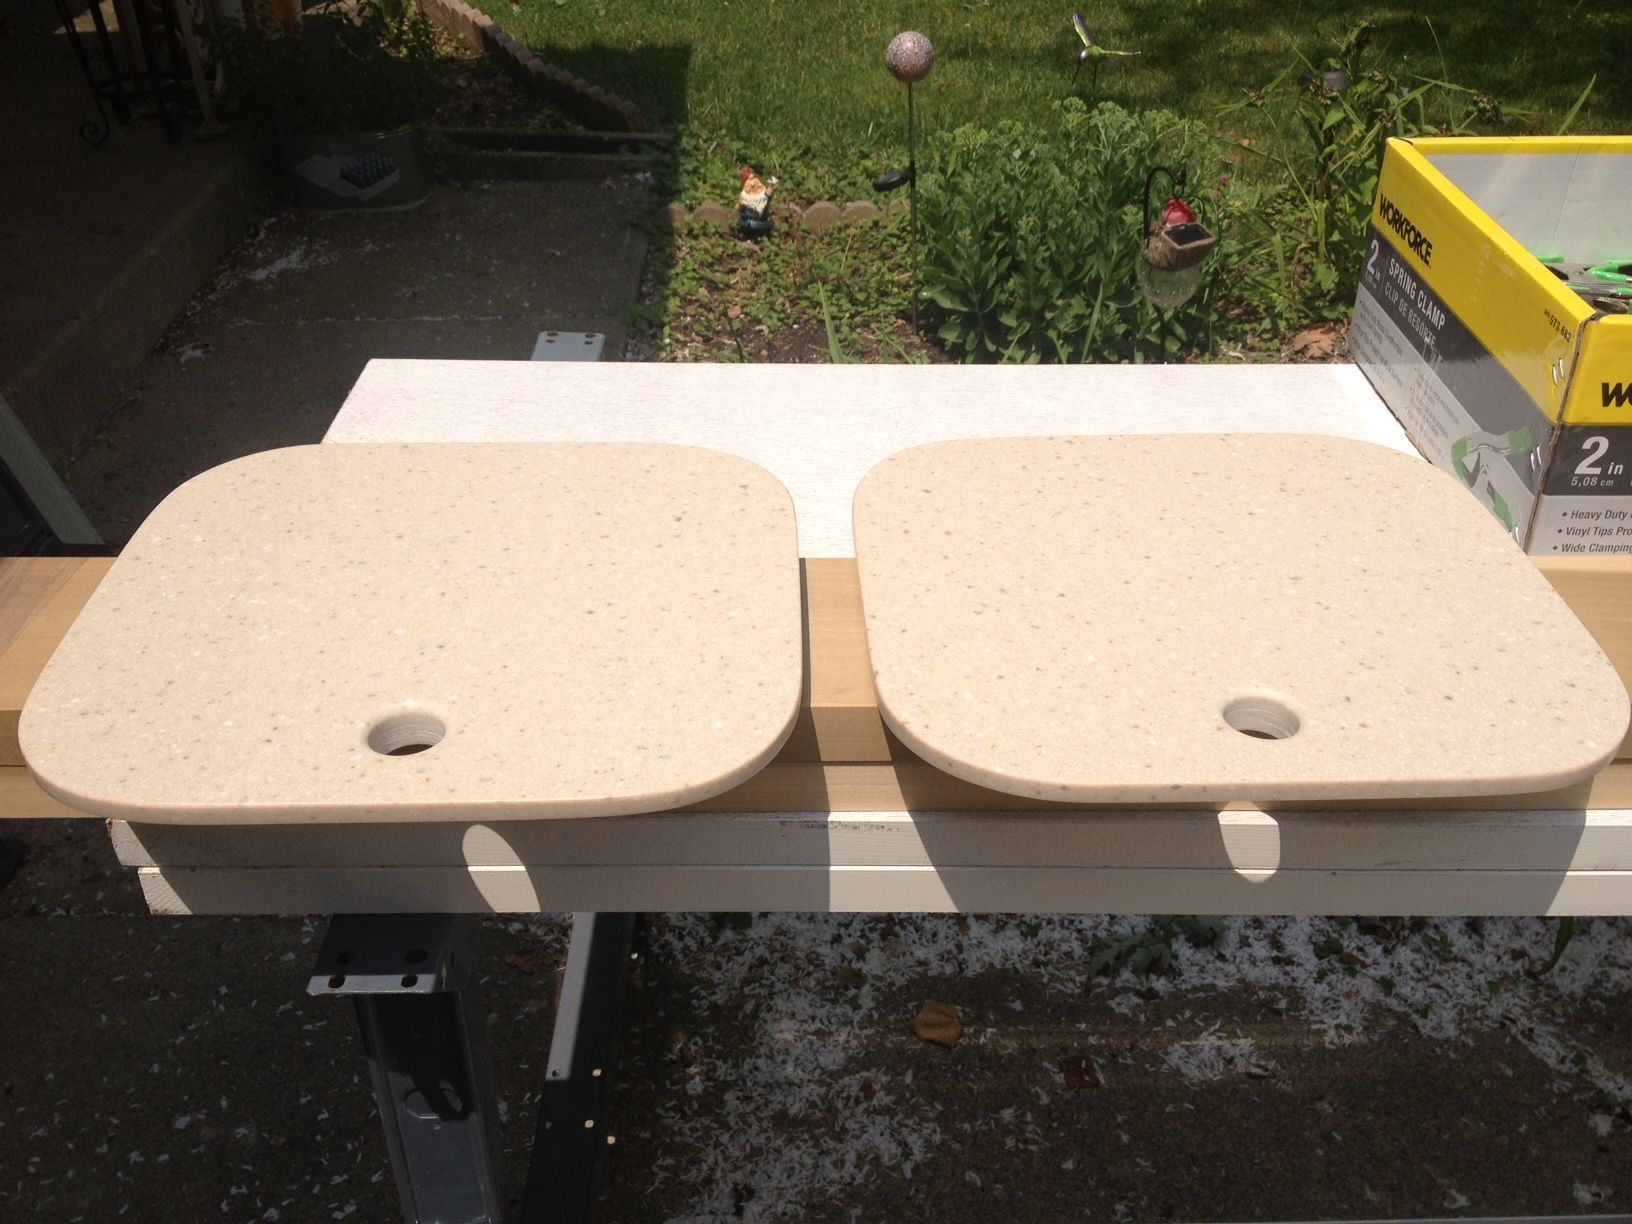 Corian Sink Inserts For Pop Up Camper Made For Customer